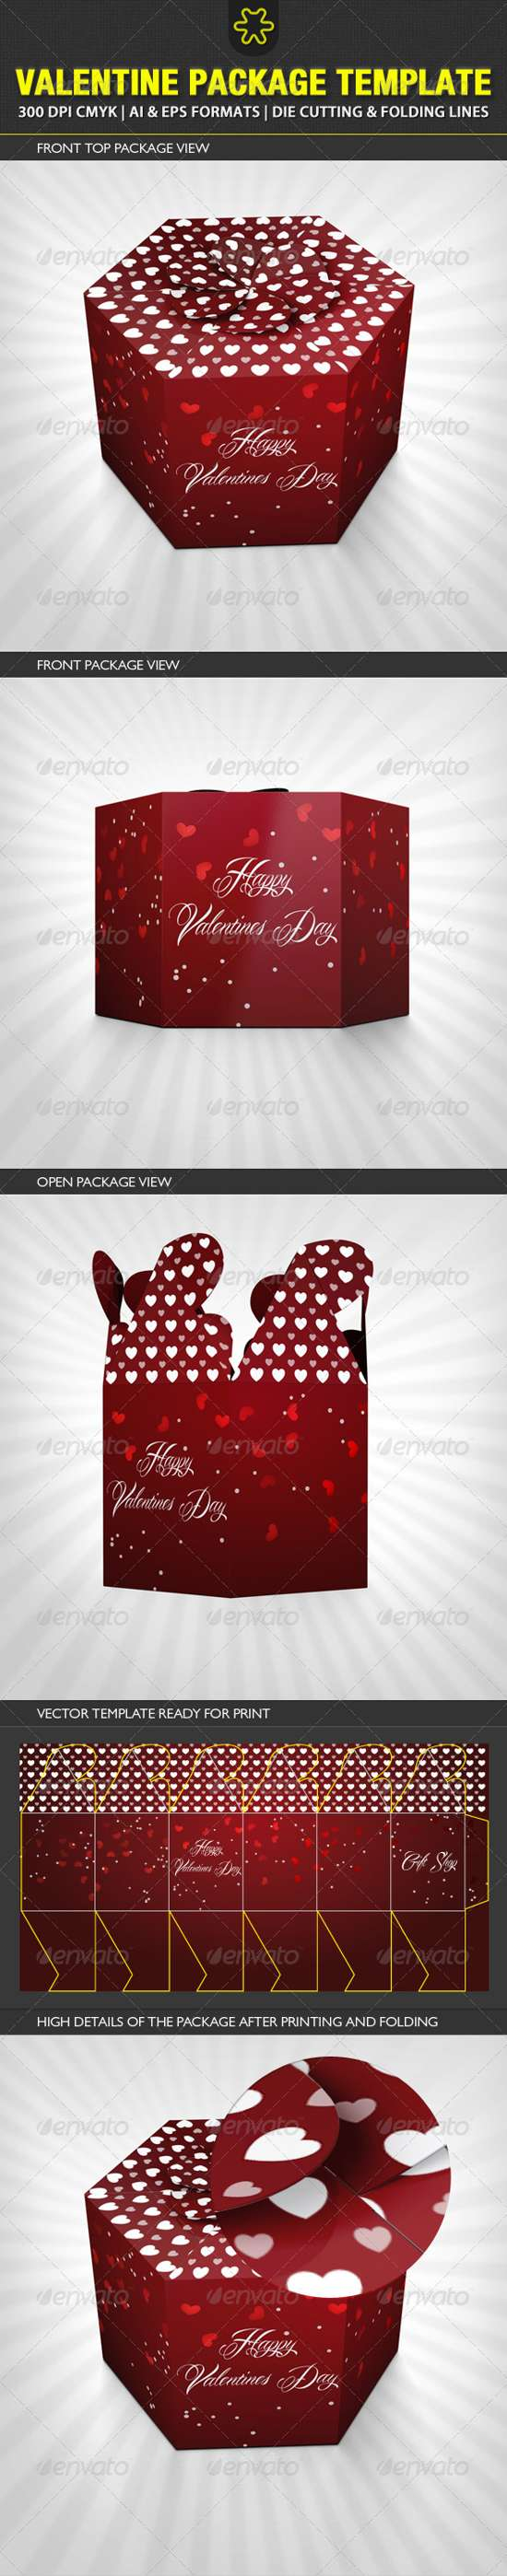 valentine gift packaging template